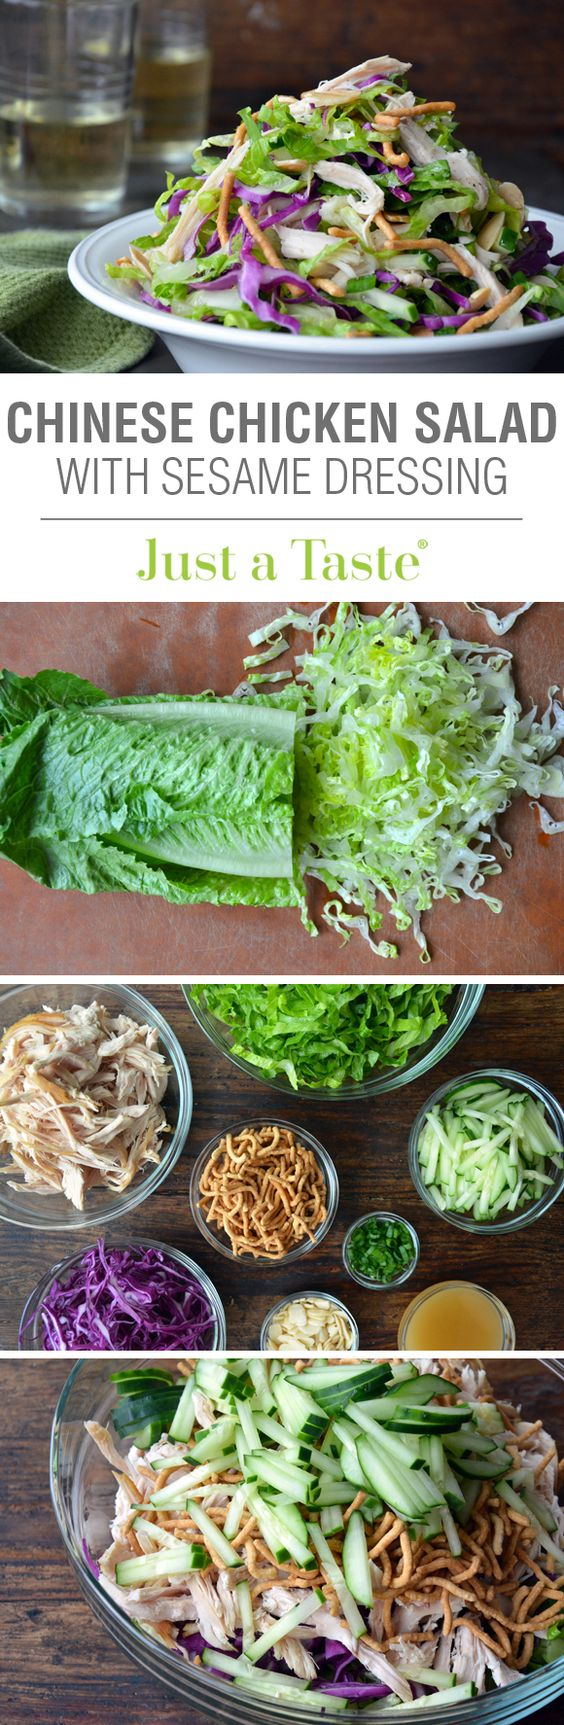 Most Pinned Salad Recipe on Pinterest 23